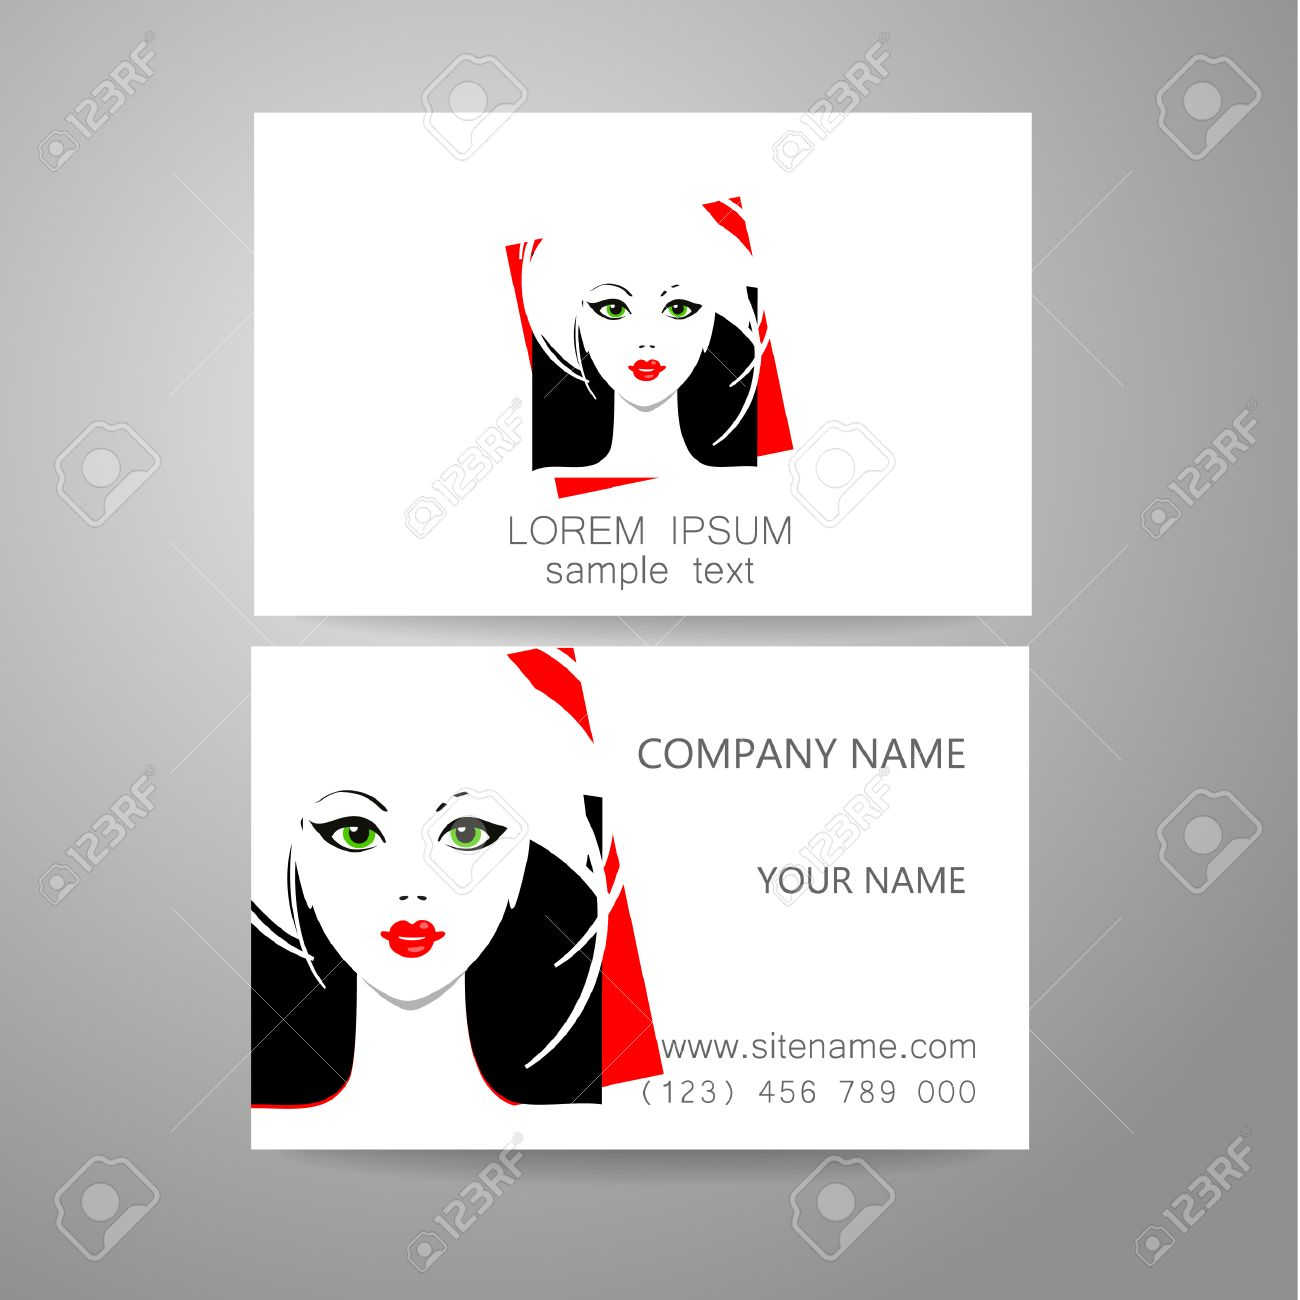 Business Cards For Hairstylist Image collections - Free Business Cards